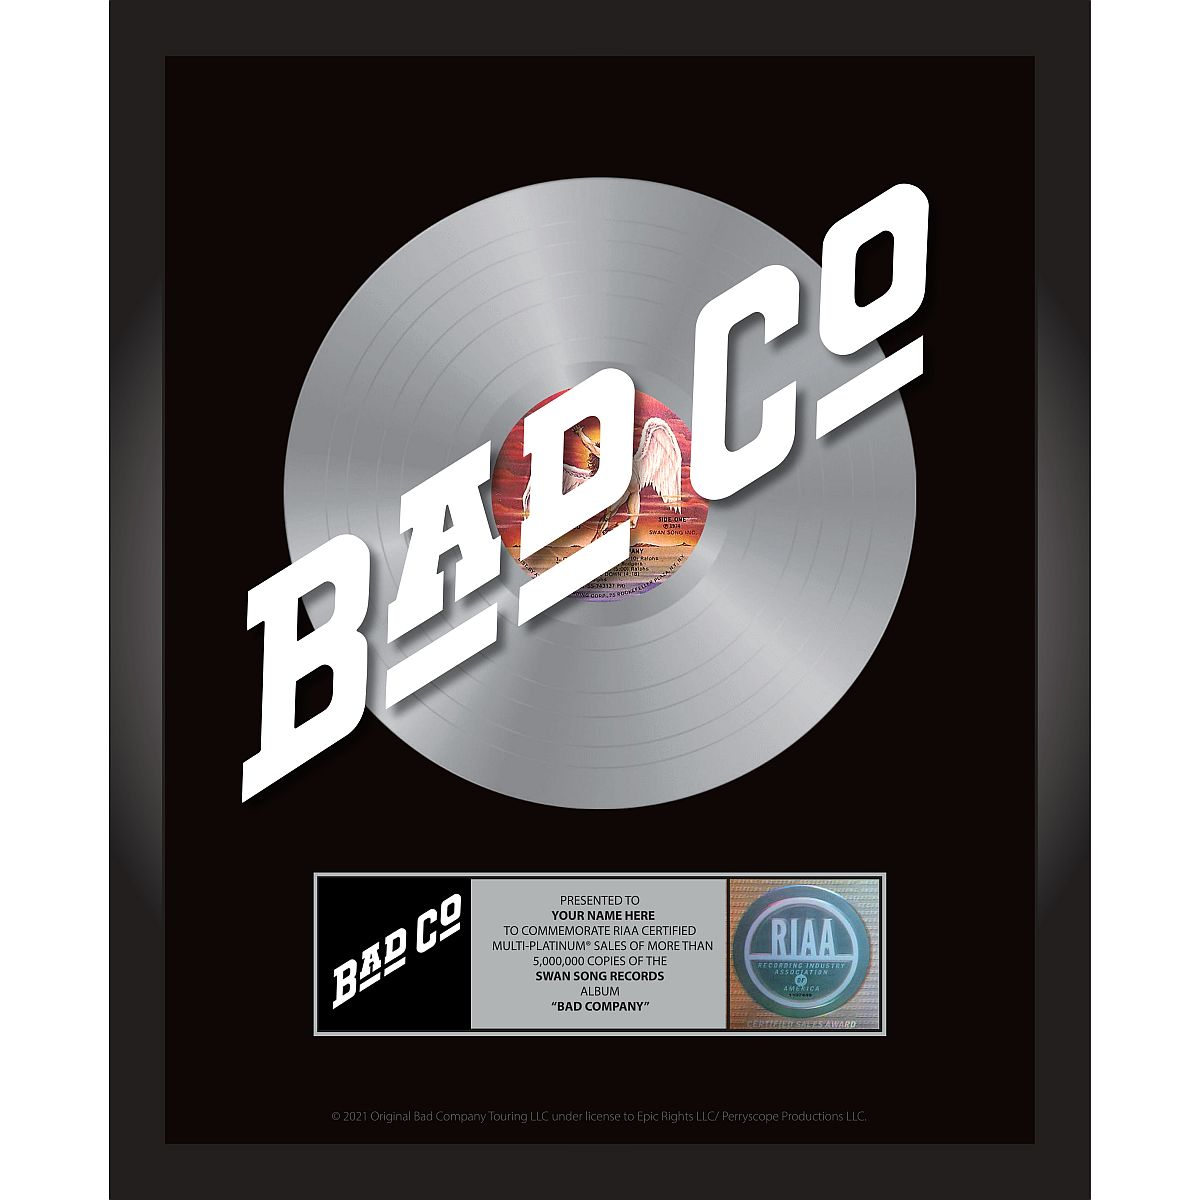 Bad Company Personalized Award Plaque